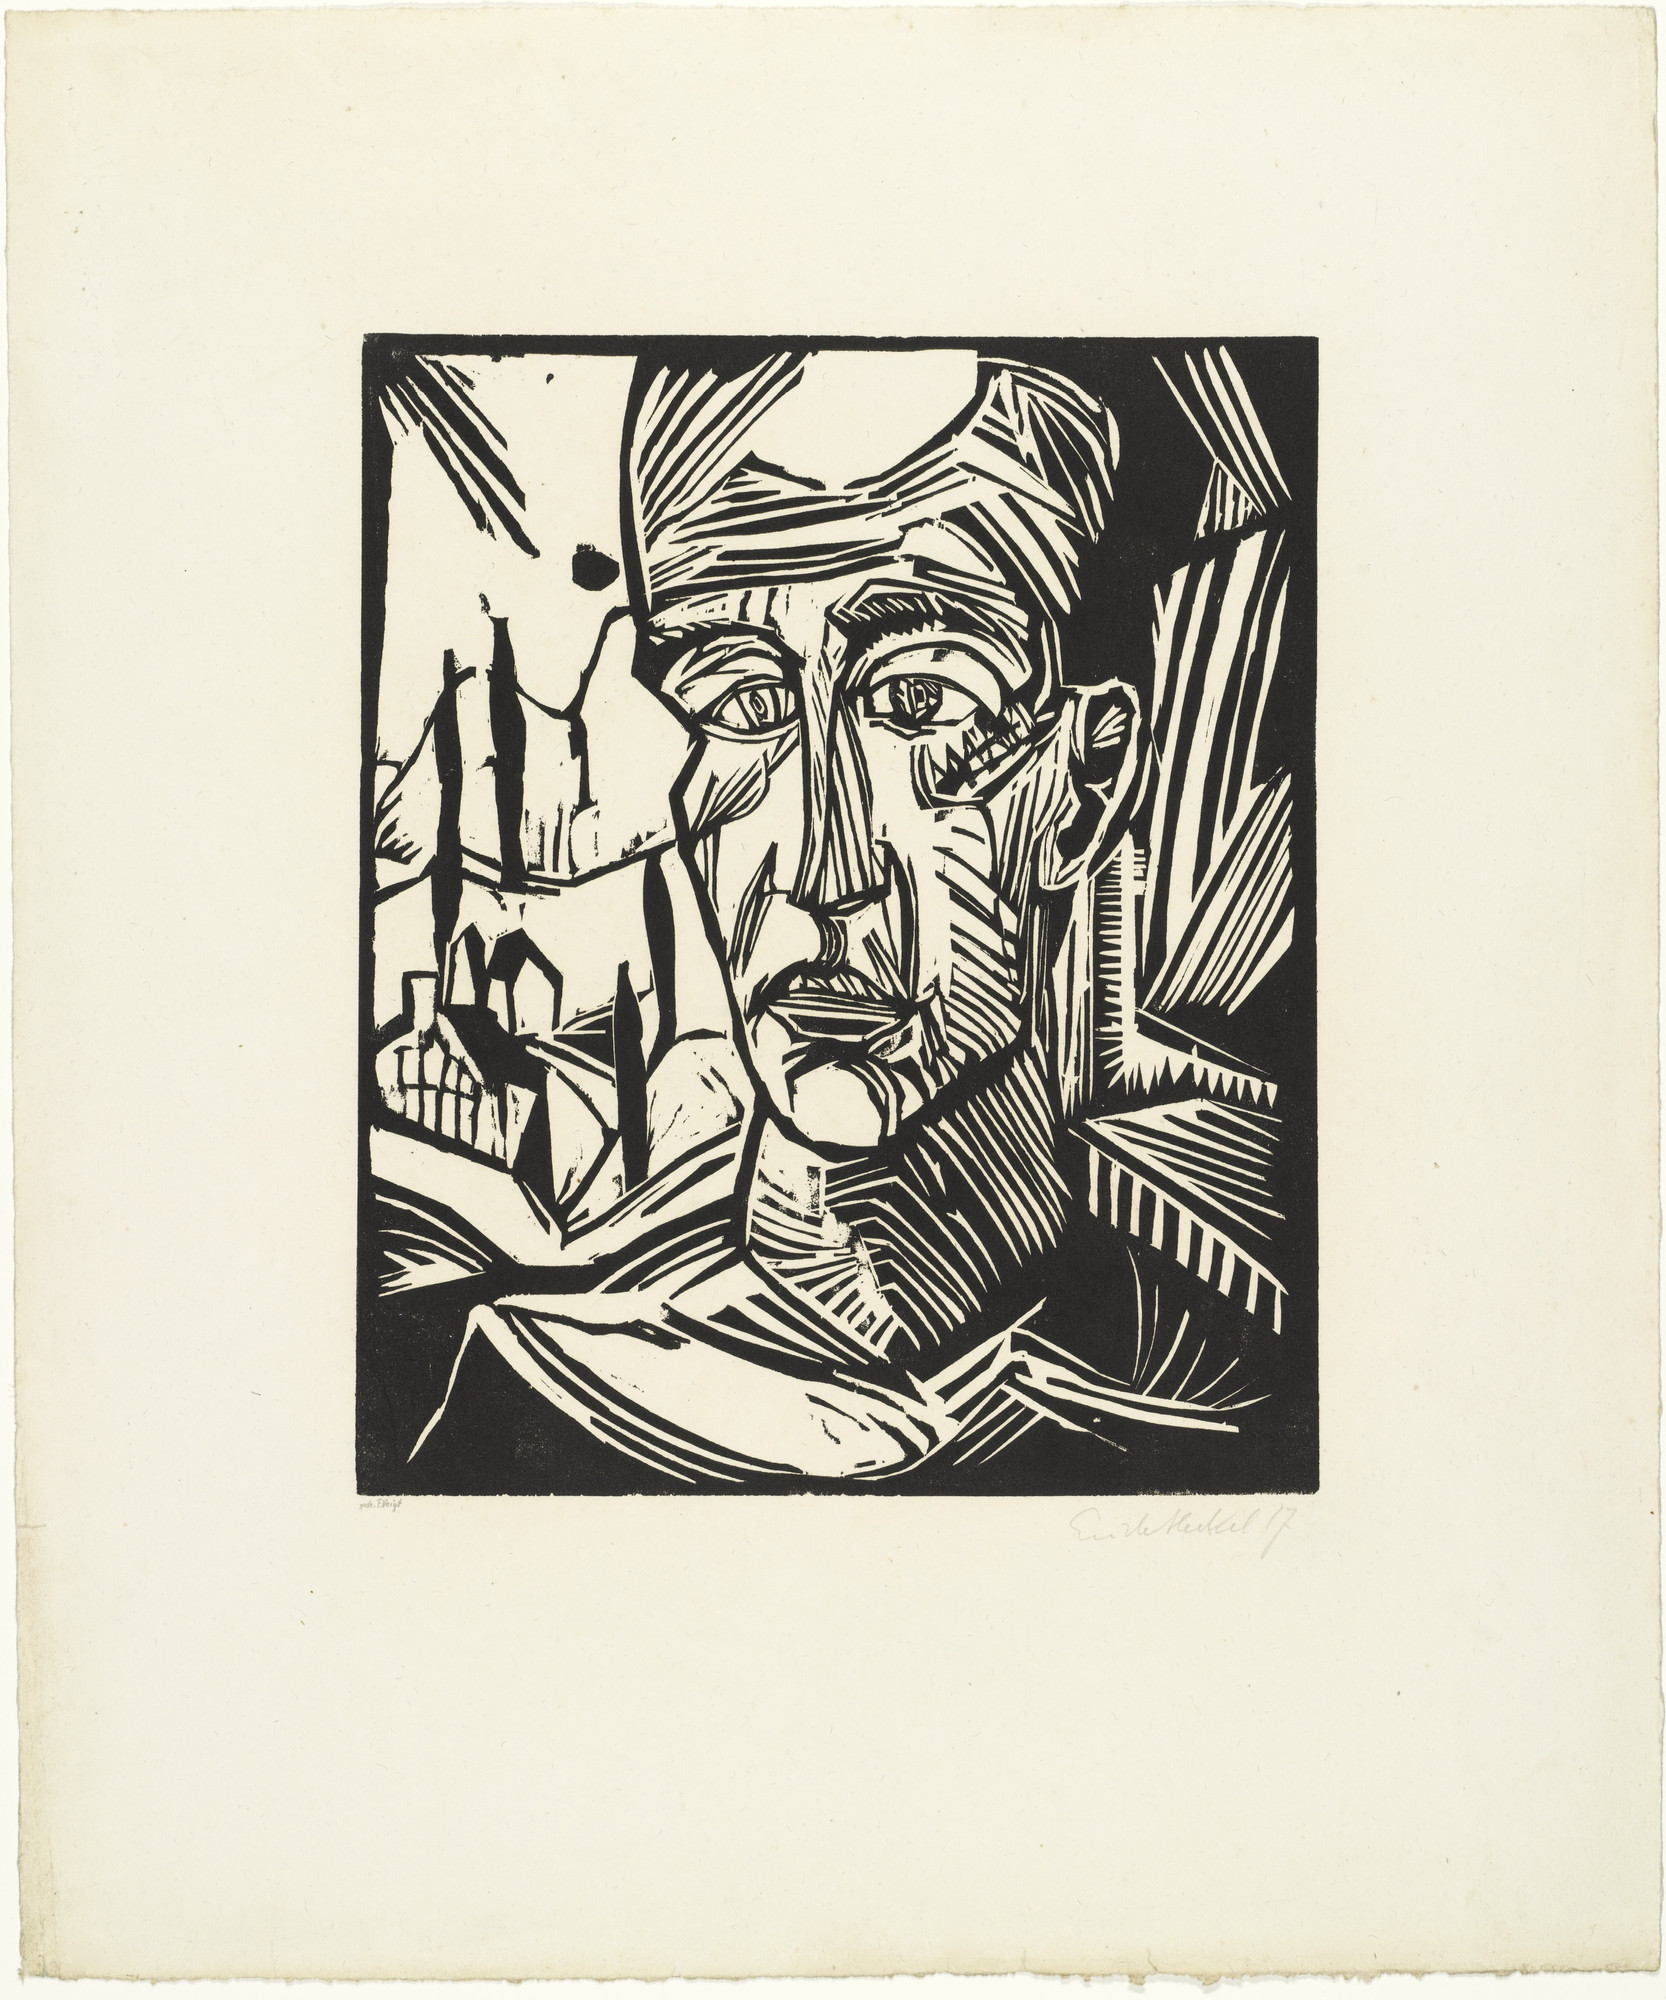 Erich Heckel. Young Man (Jüngling) from the portfolio Eleven Woodcuts, 1912-1919 (Elf Holzschnitte, 1912-1919). 1917 (published 1921)